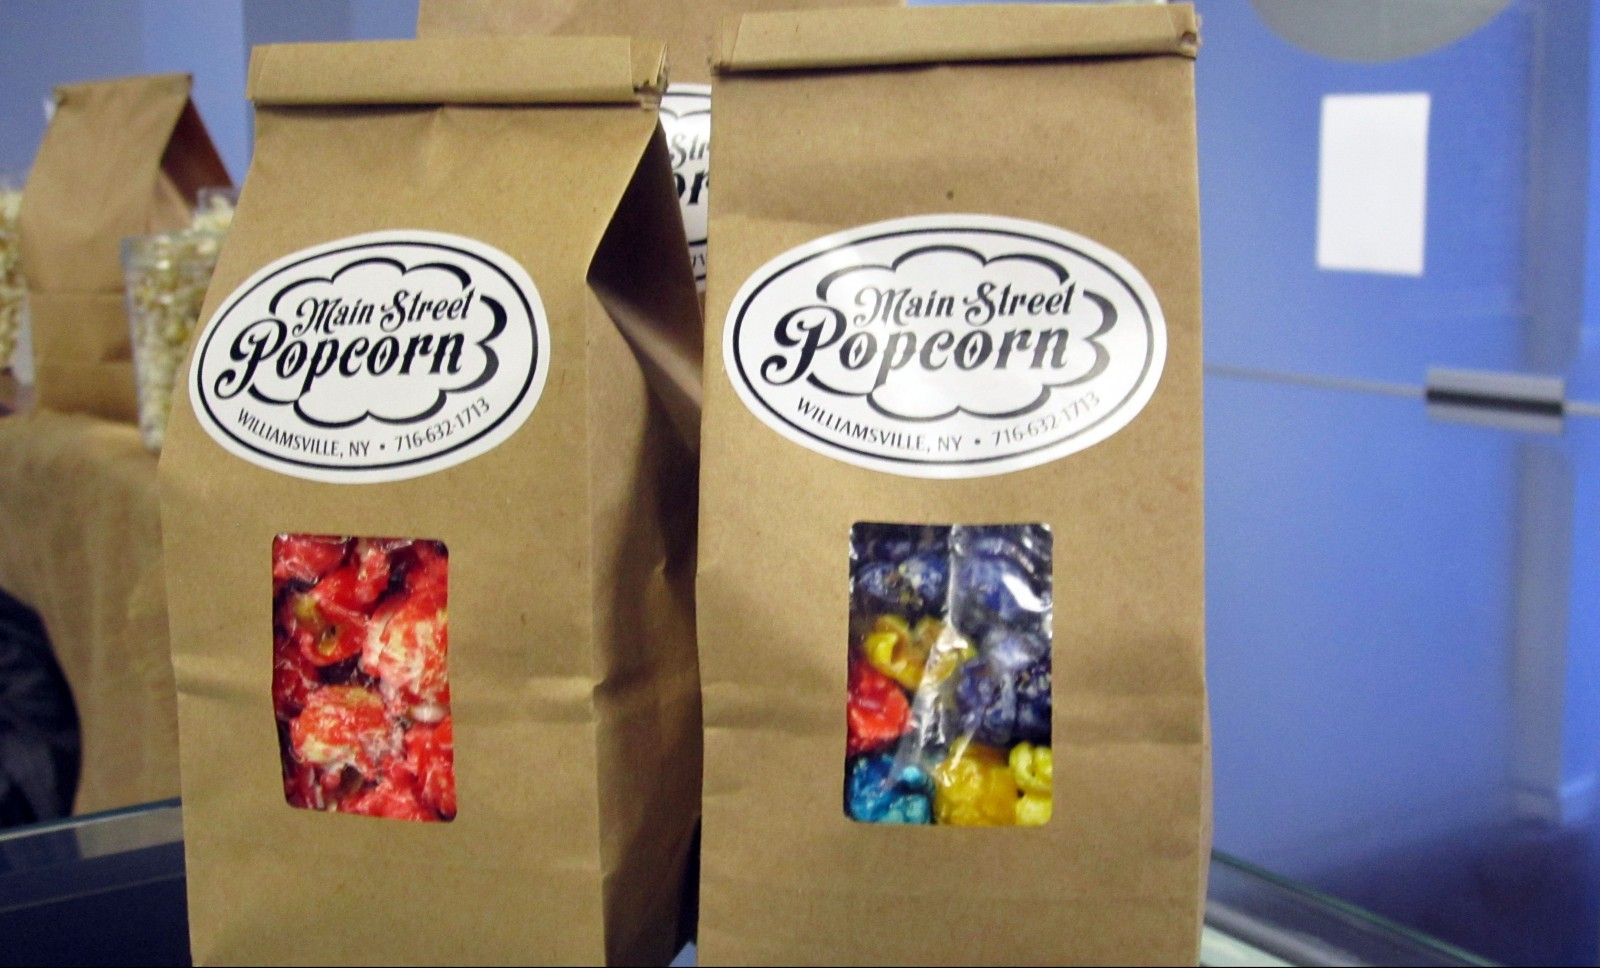 Main Street Popcorn in Williamsville could be your appetite's best friend during the Oscars.